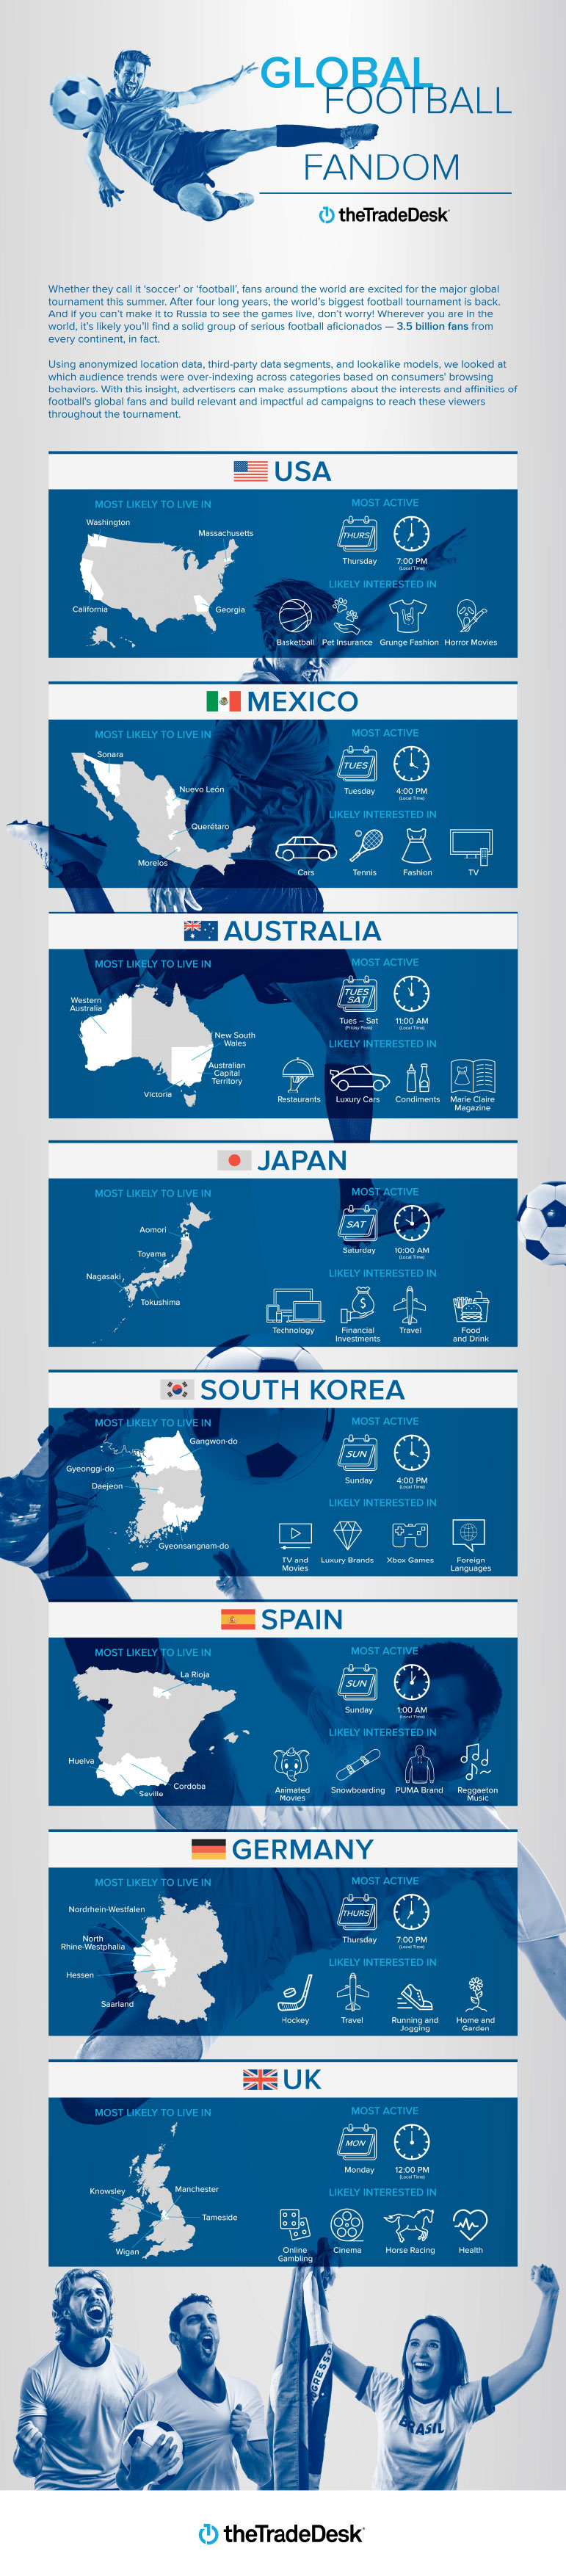 The Trade Desk's World Cup infographic